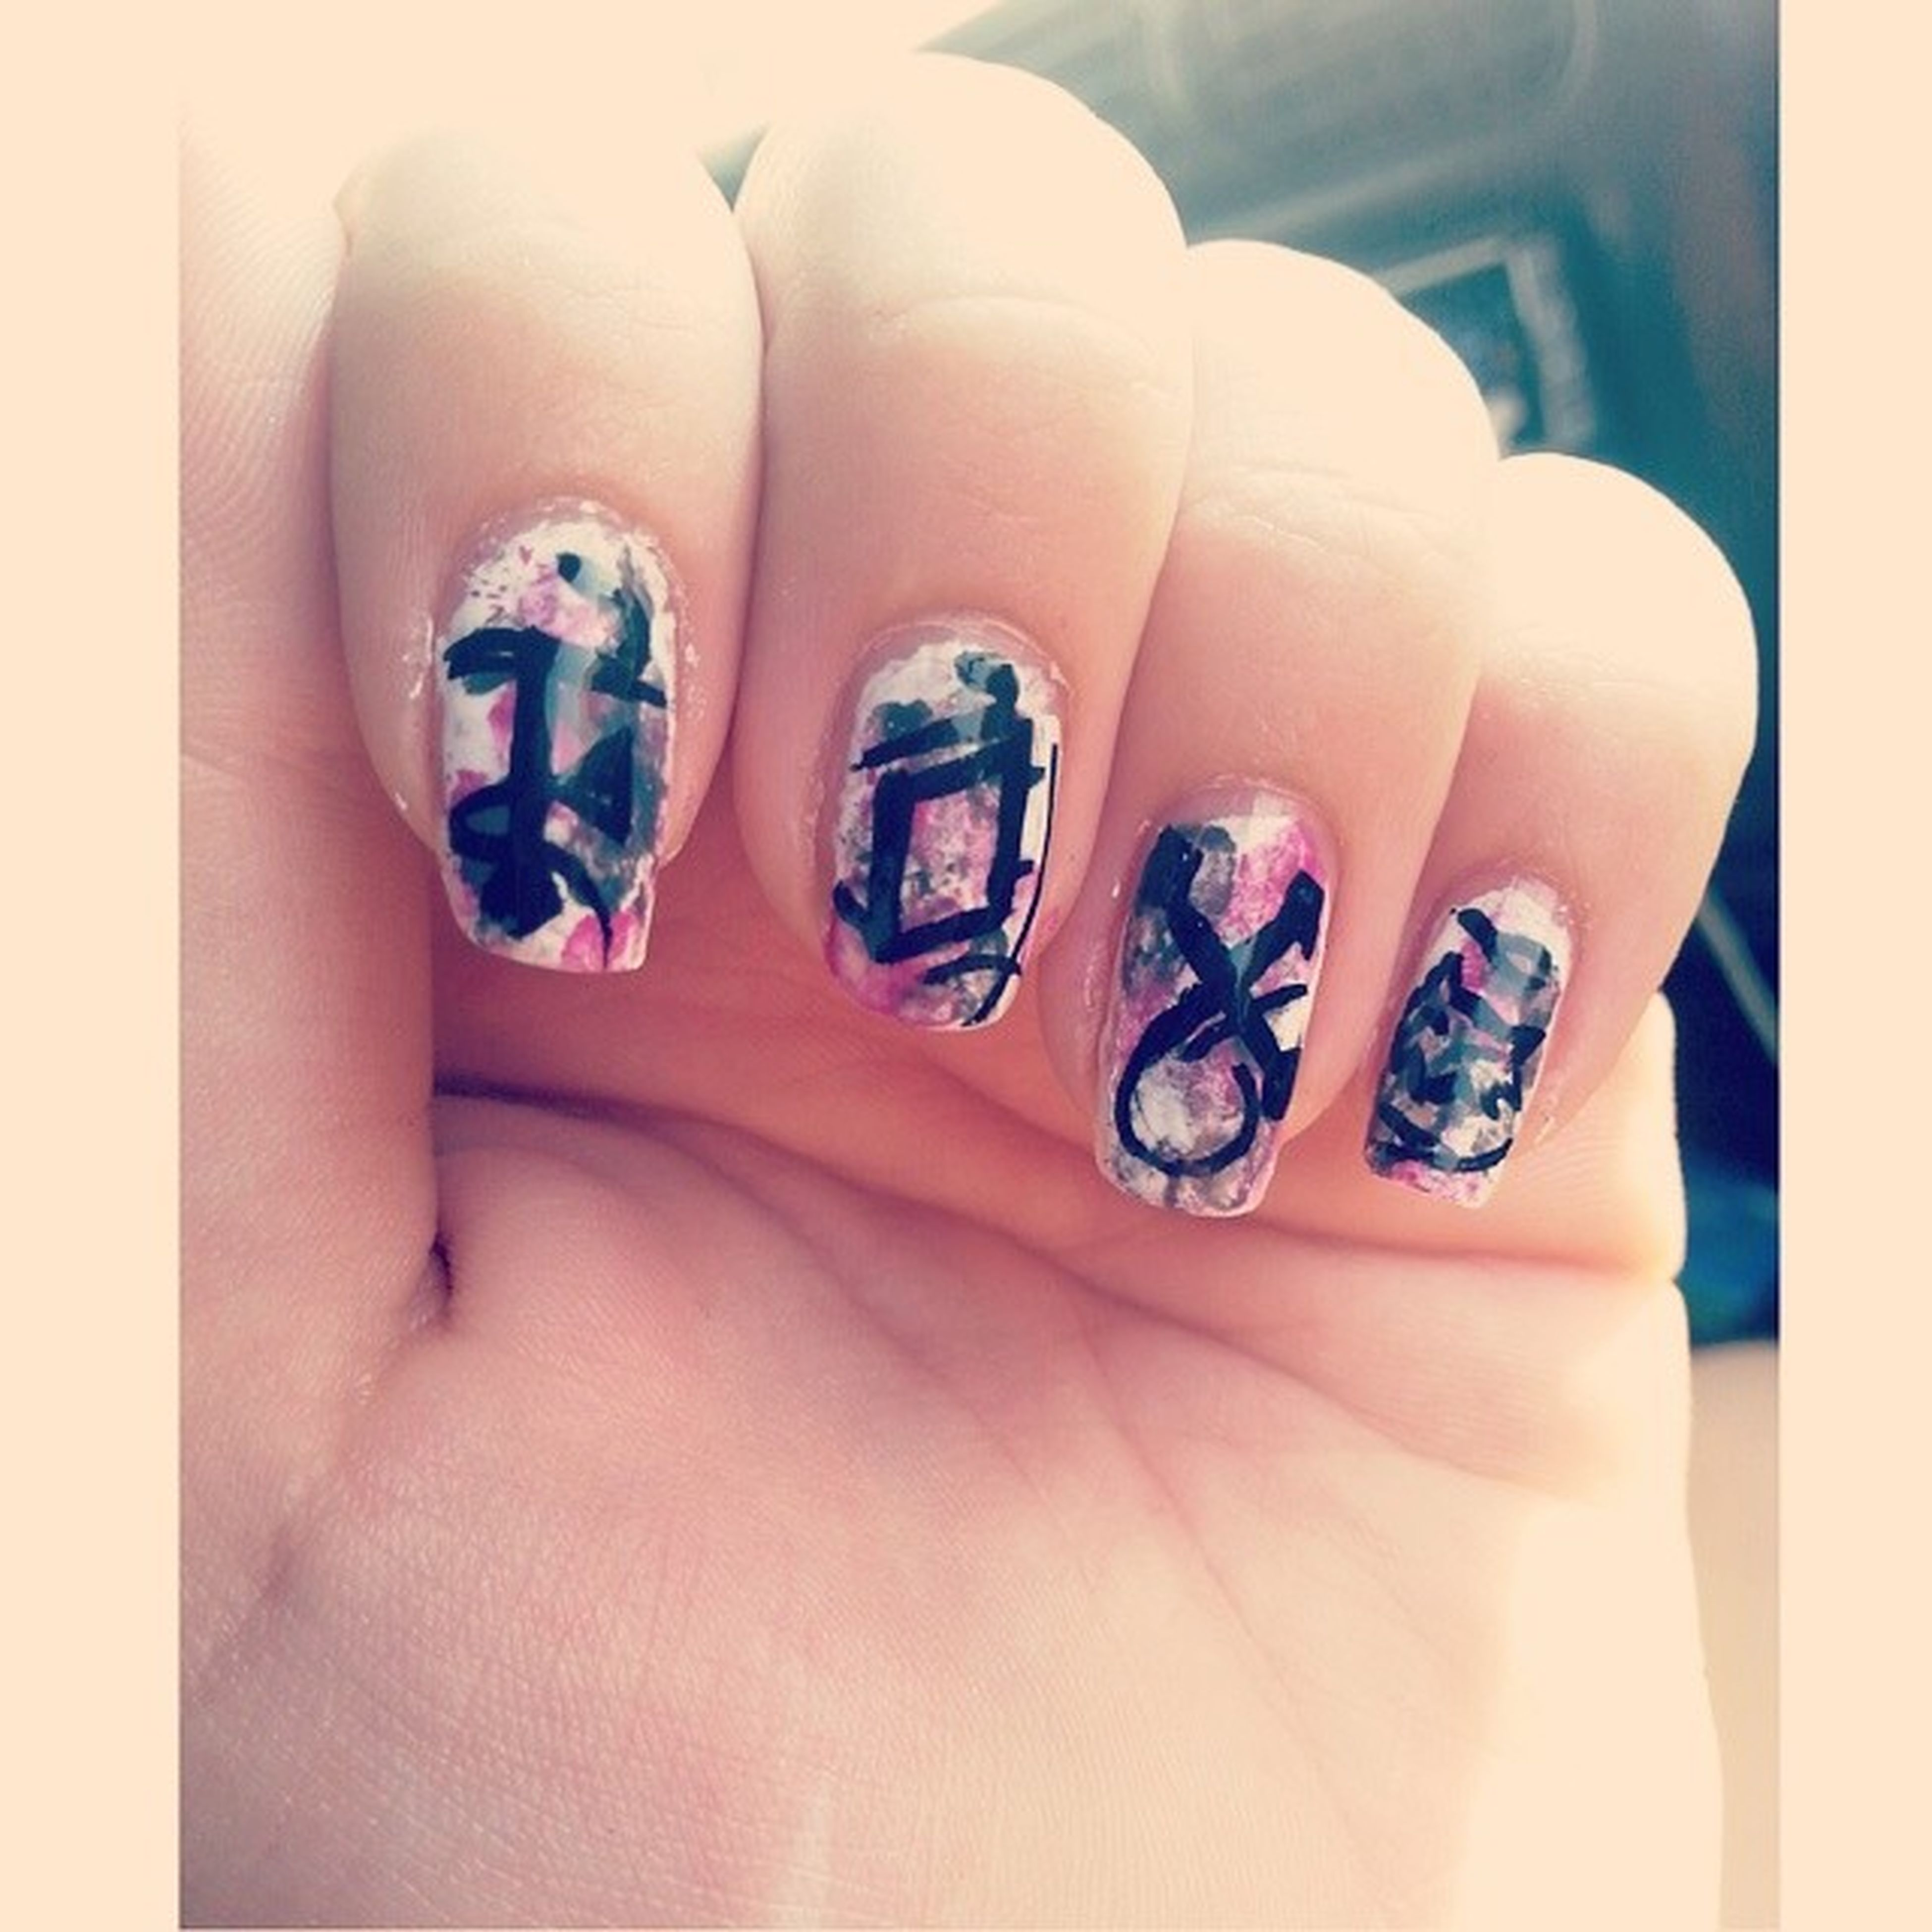 nails painted ✌ Nails Painted Fox Foxnails